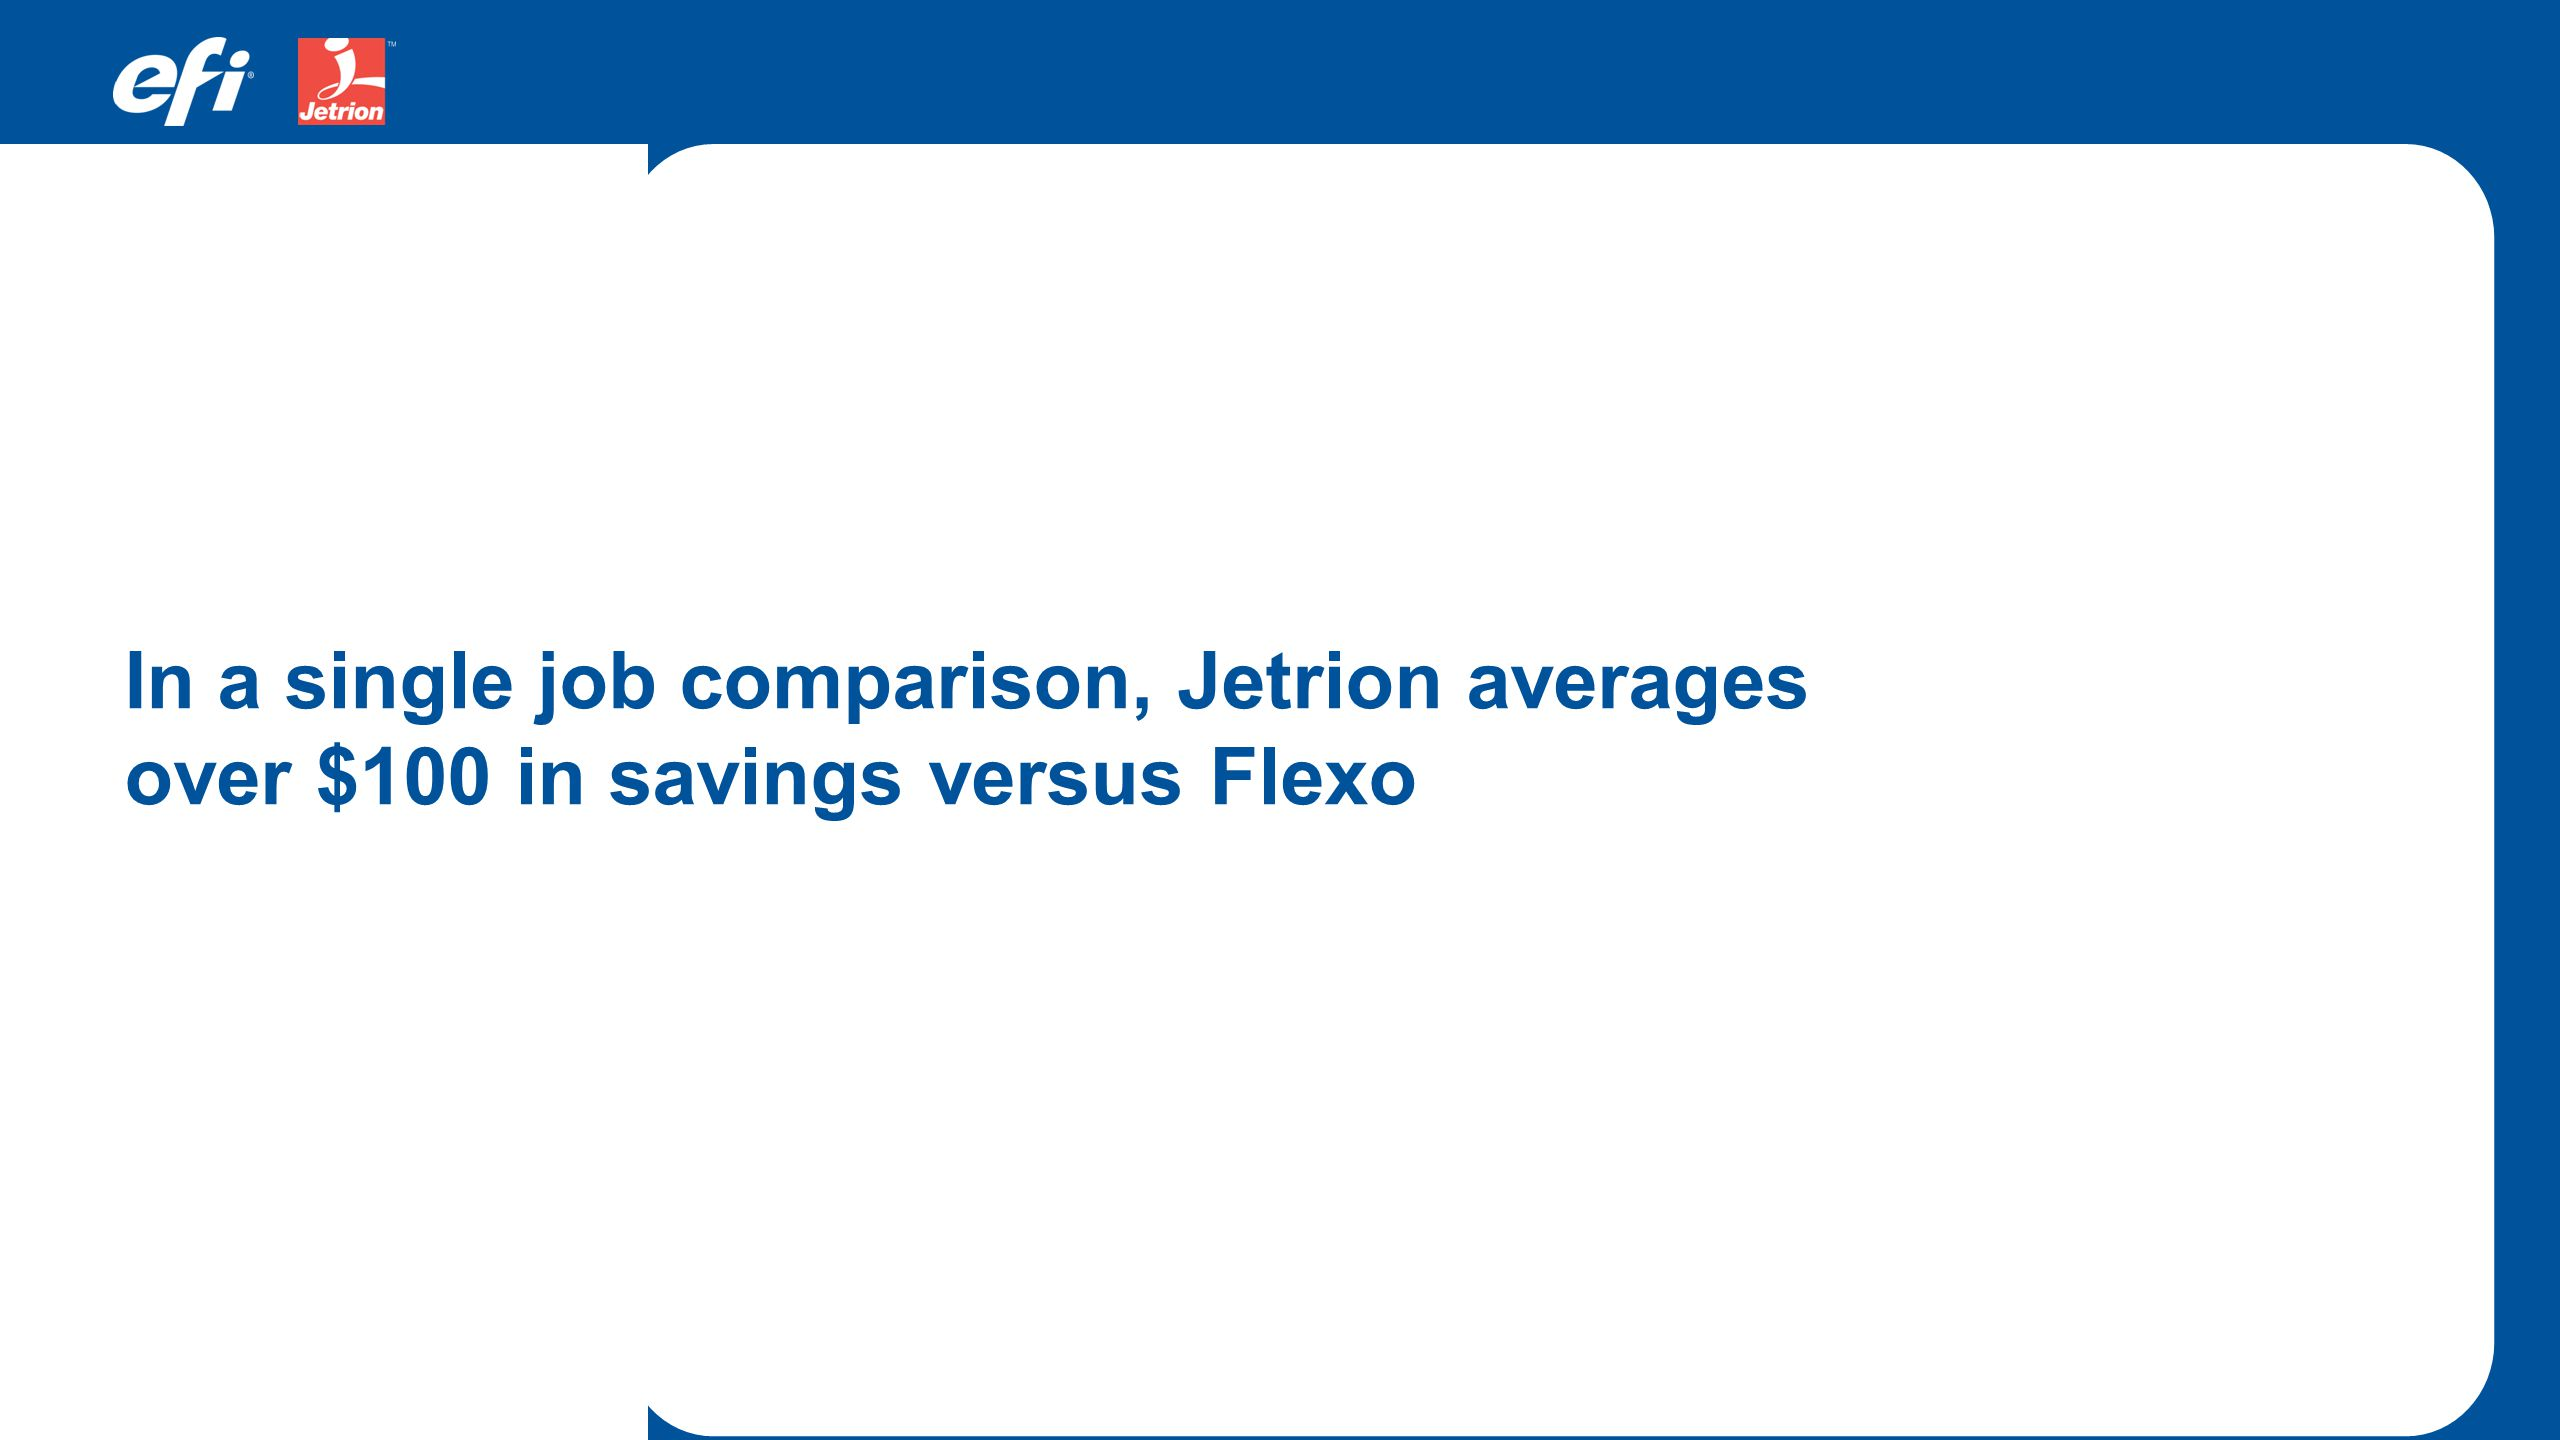 In a single job comparison, Jetrion averages over $100 in savings versus Flexo